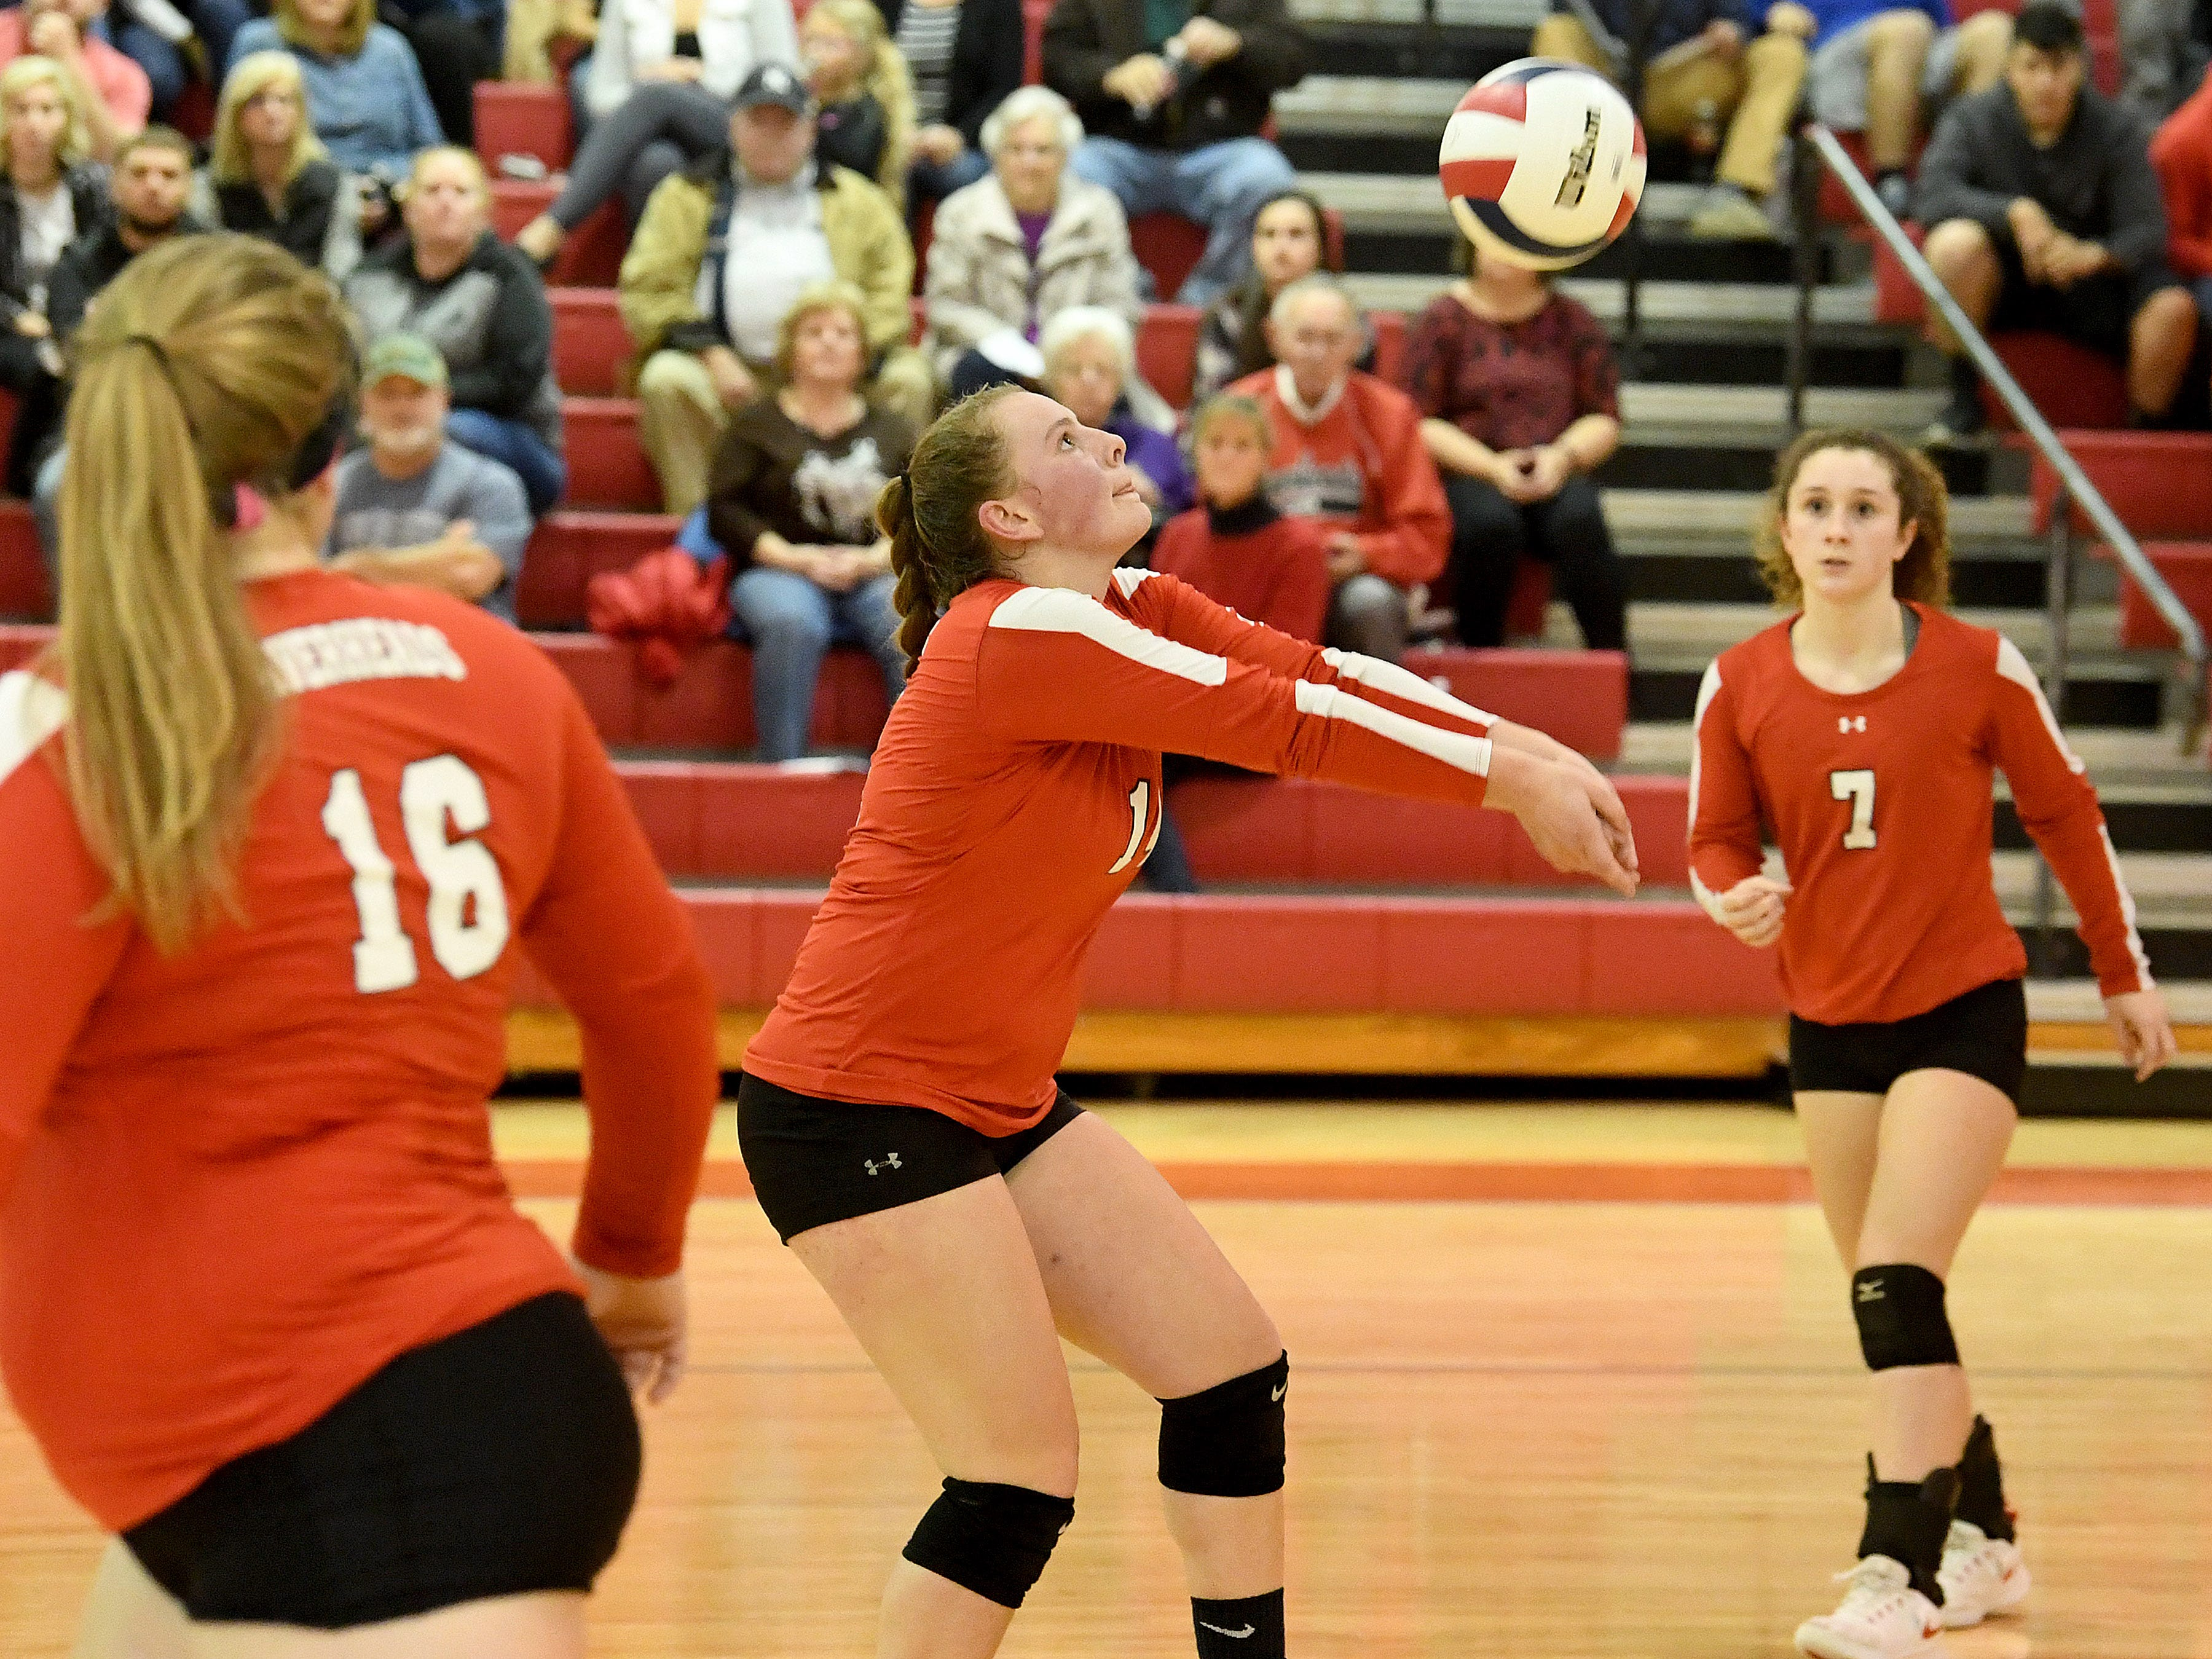 Riverheads' Dayton Moore bumps the ball during the Region 1B volleyball championship played in Greenville on Wednesday, Nov. 7, 2018.